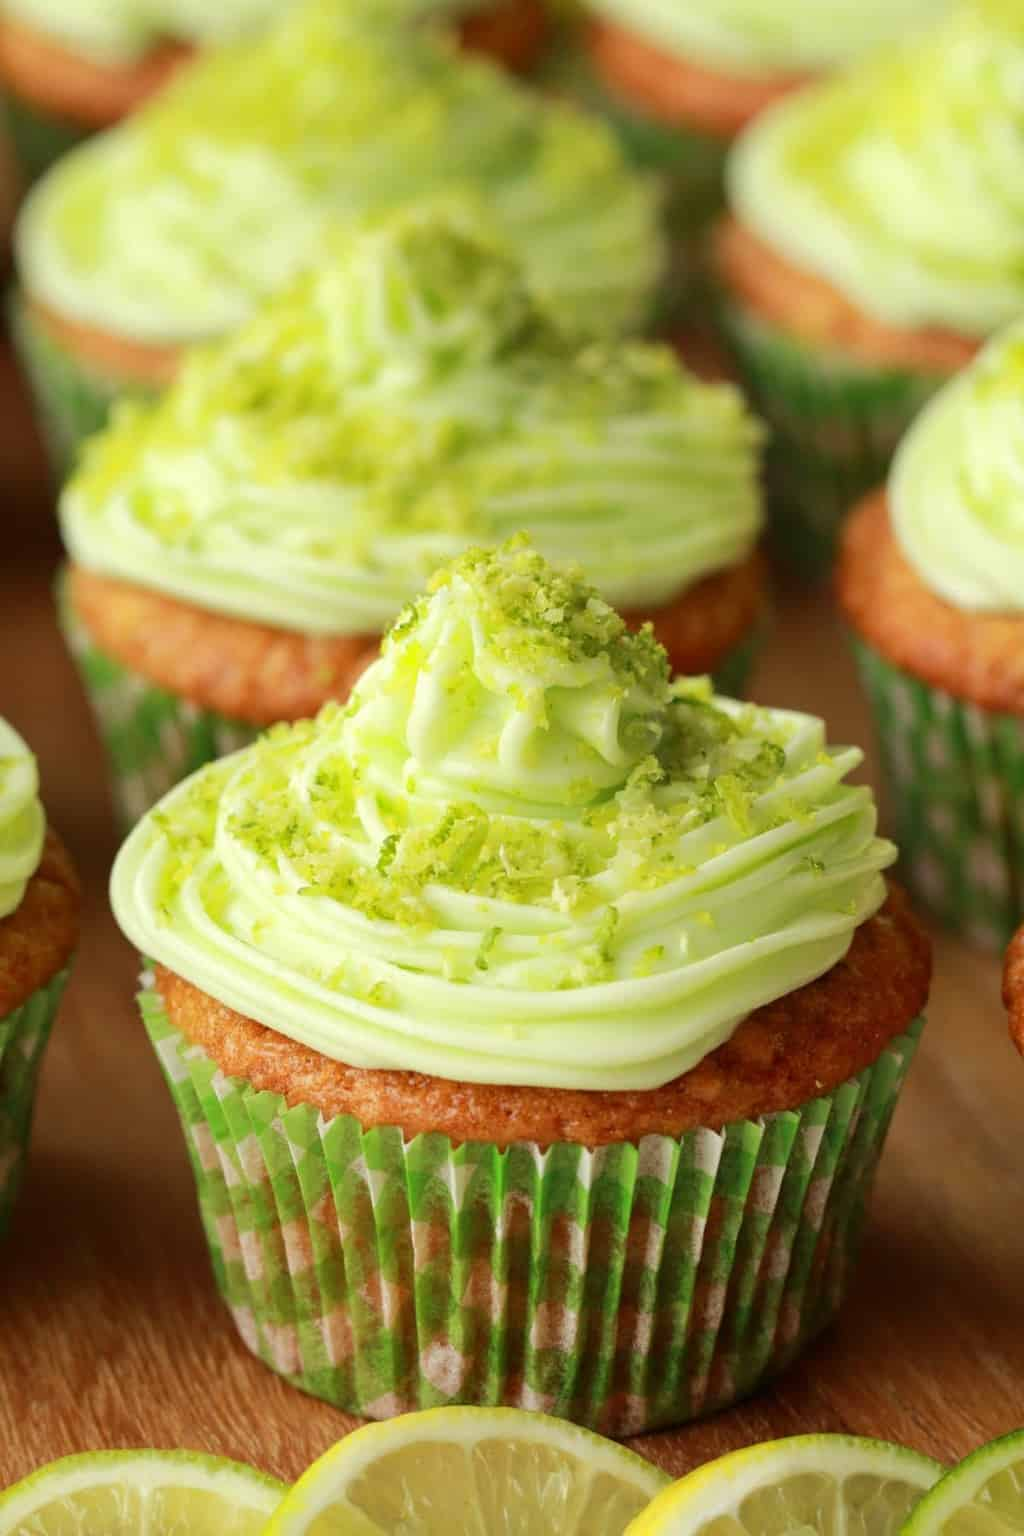 Vegan Key Lime Cupcakes on a wooden board